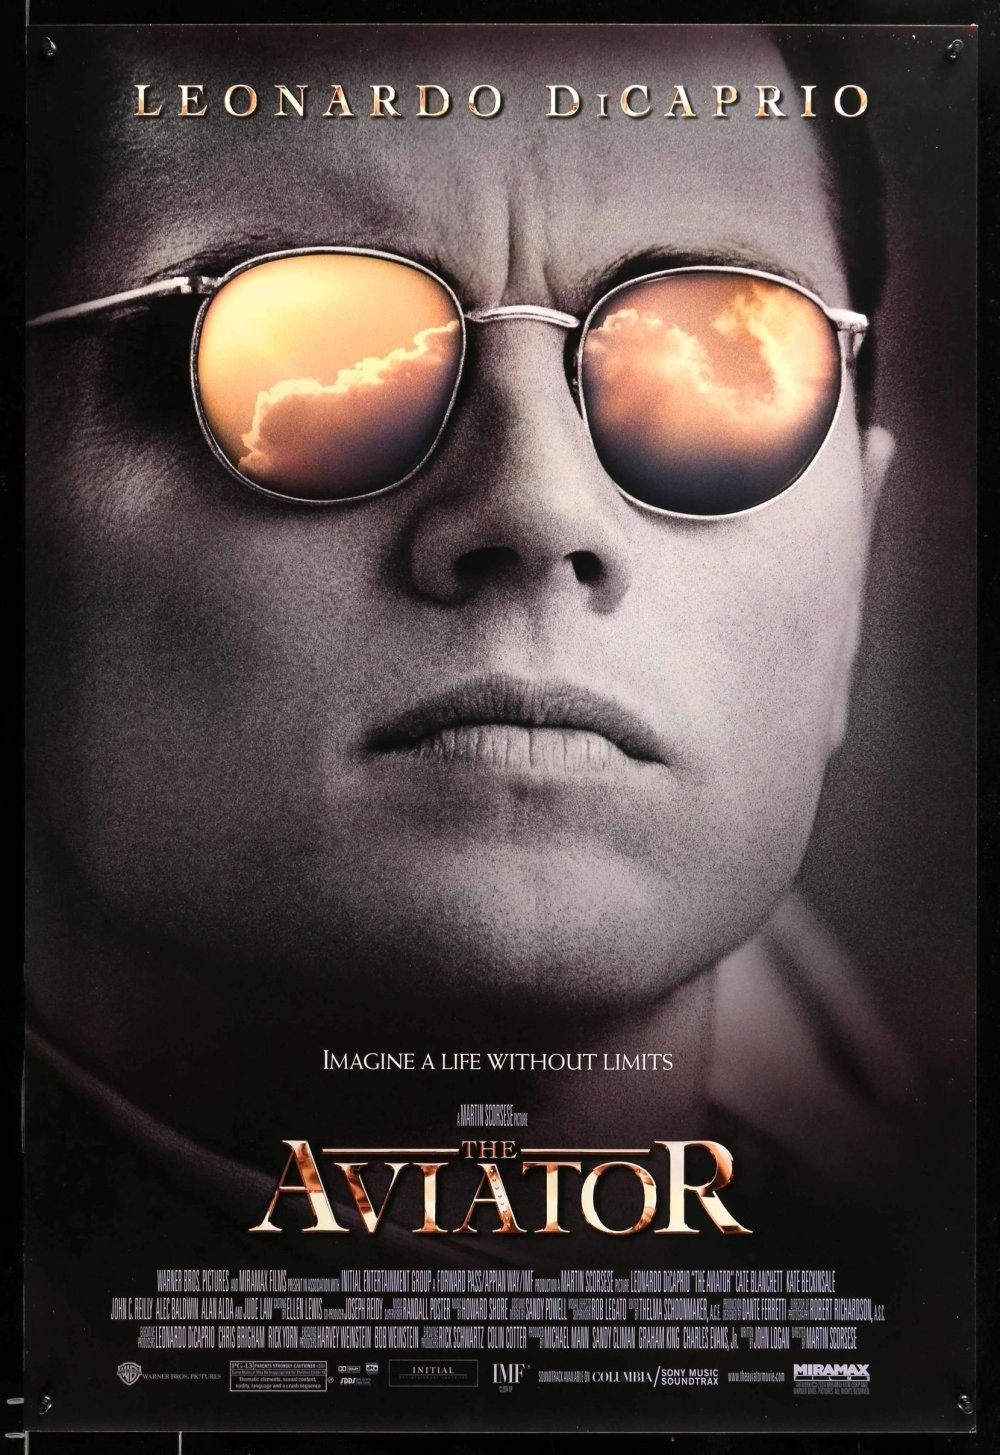 aviator_2004_Original_Film_Art_spo_2000x.jpg